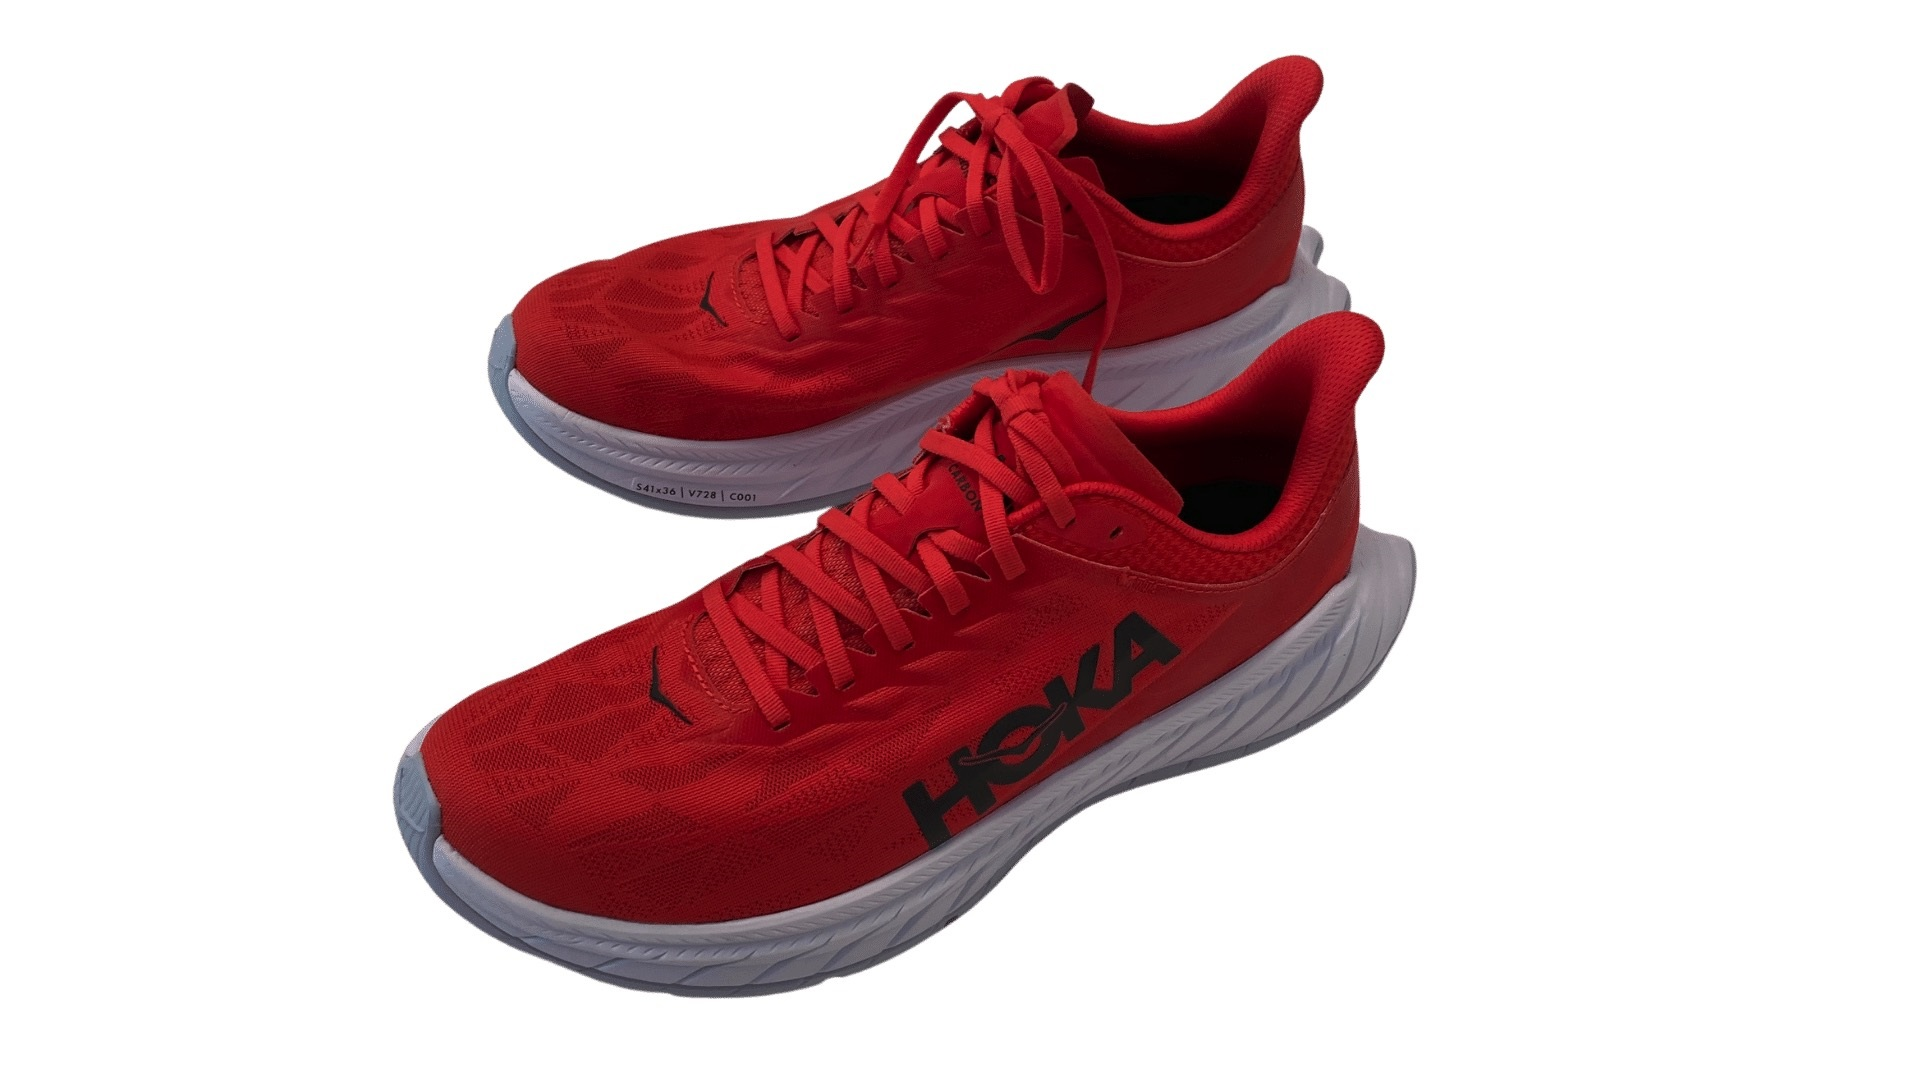 WOMEN/'S HOKA ONE CARBON X     !!BRAND NEW ! RUNNING SHOES ! WITHOUT BOX